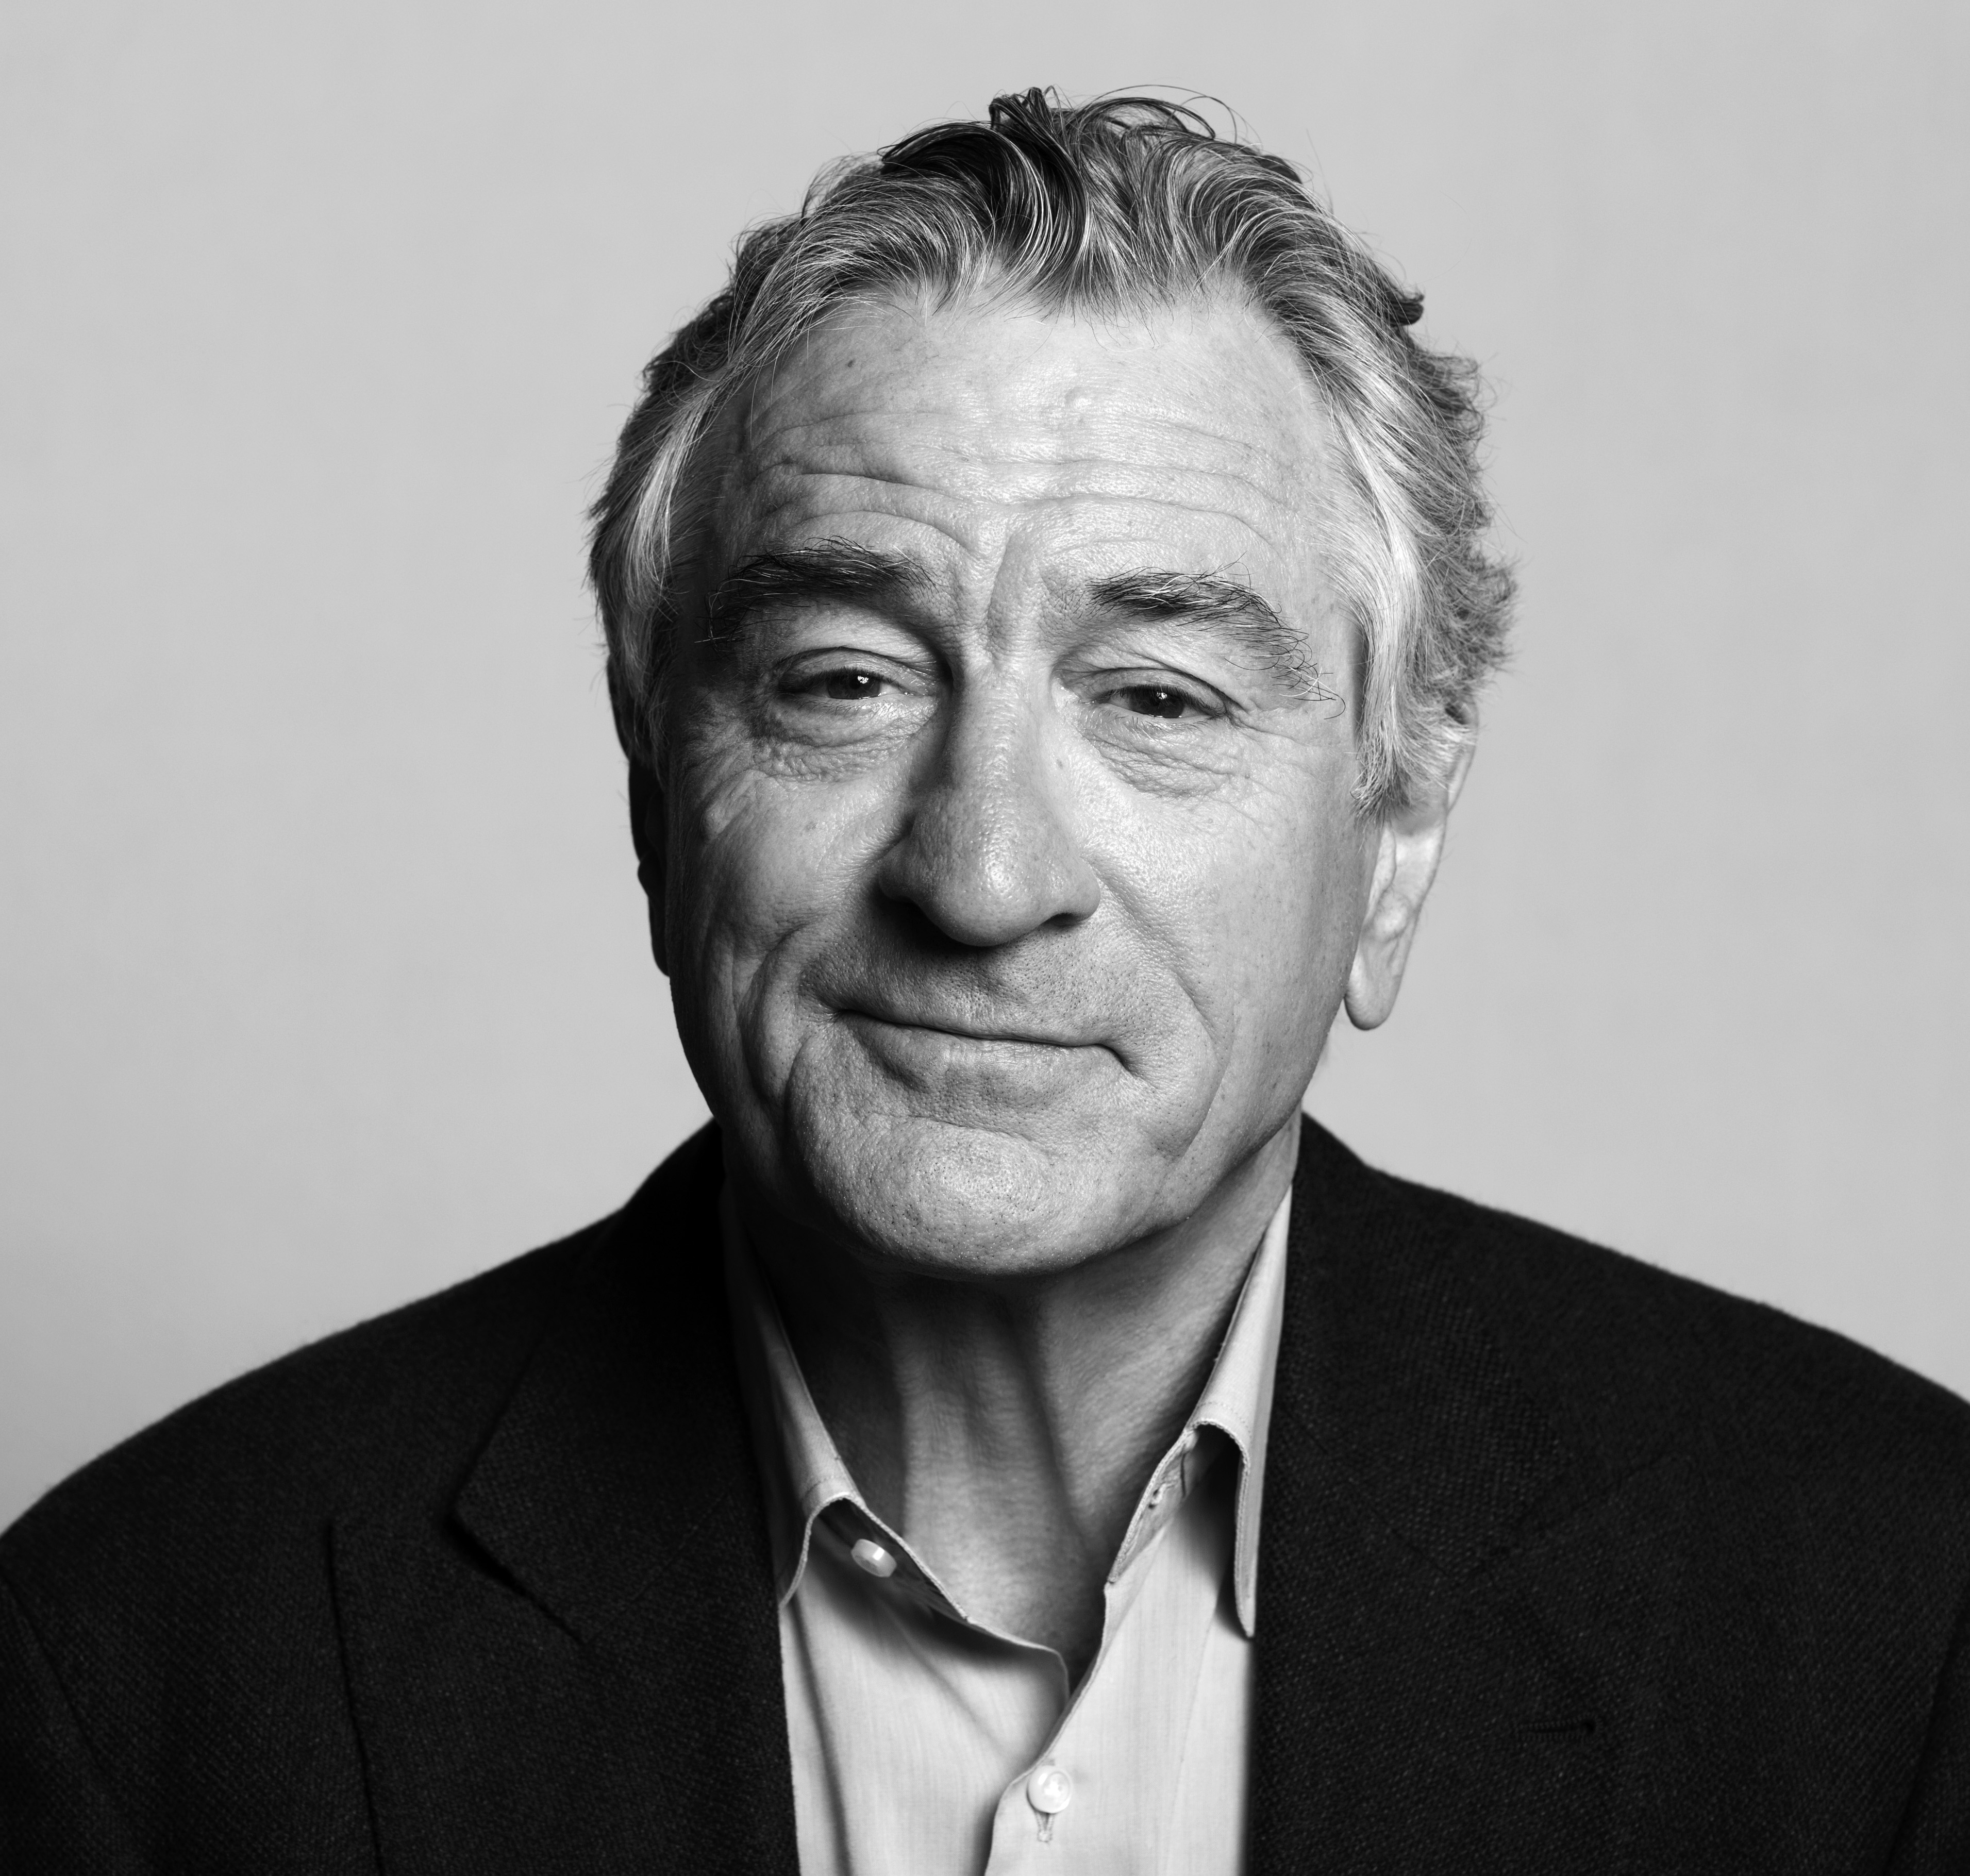 Robert De Niro to Keynote 2018 NAB Show New York | NAB ...